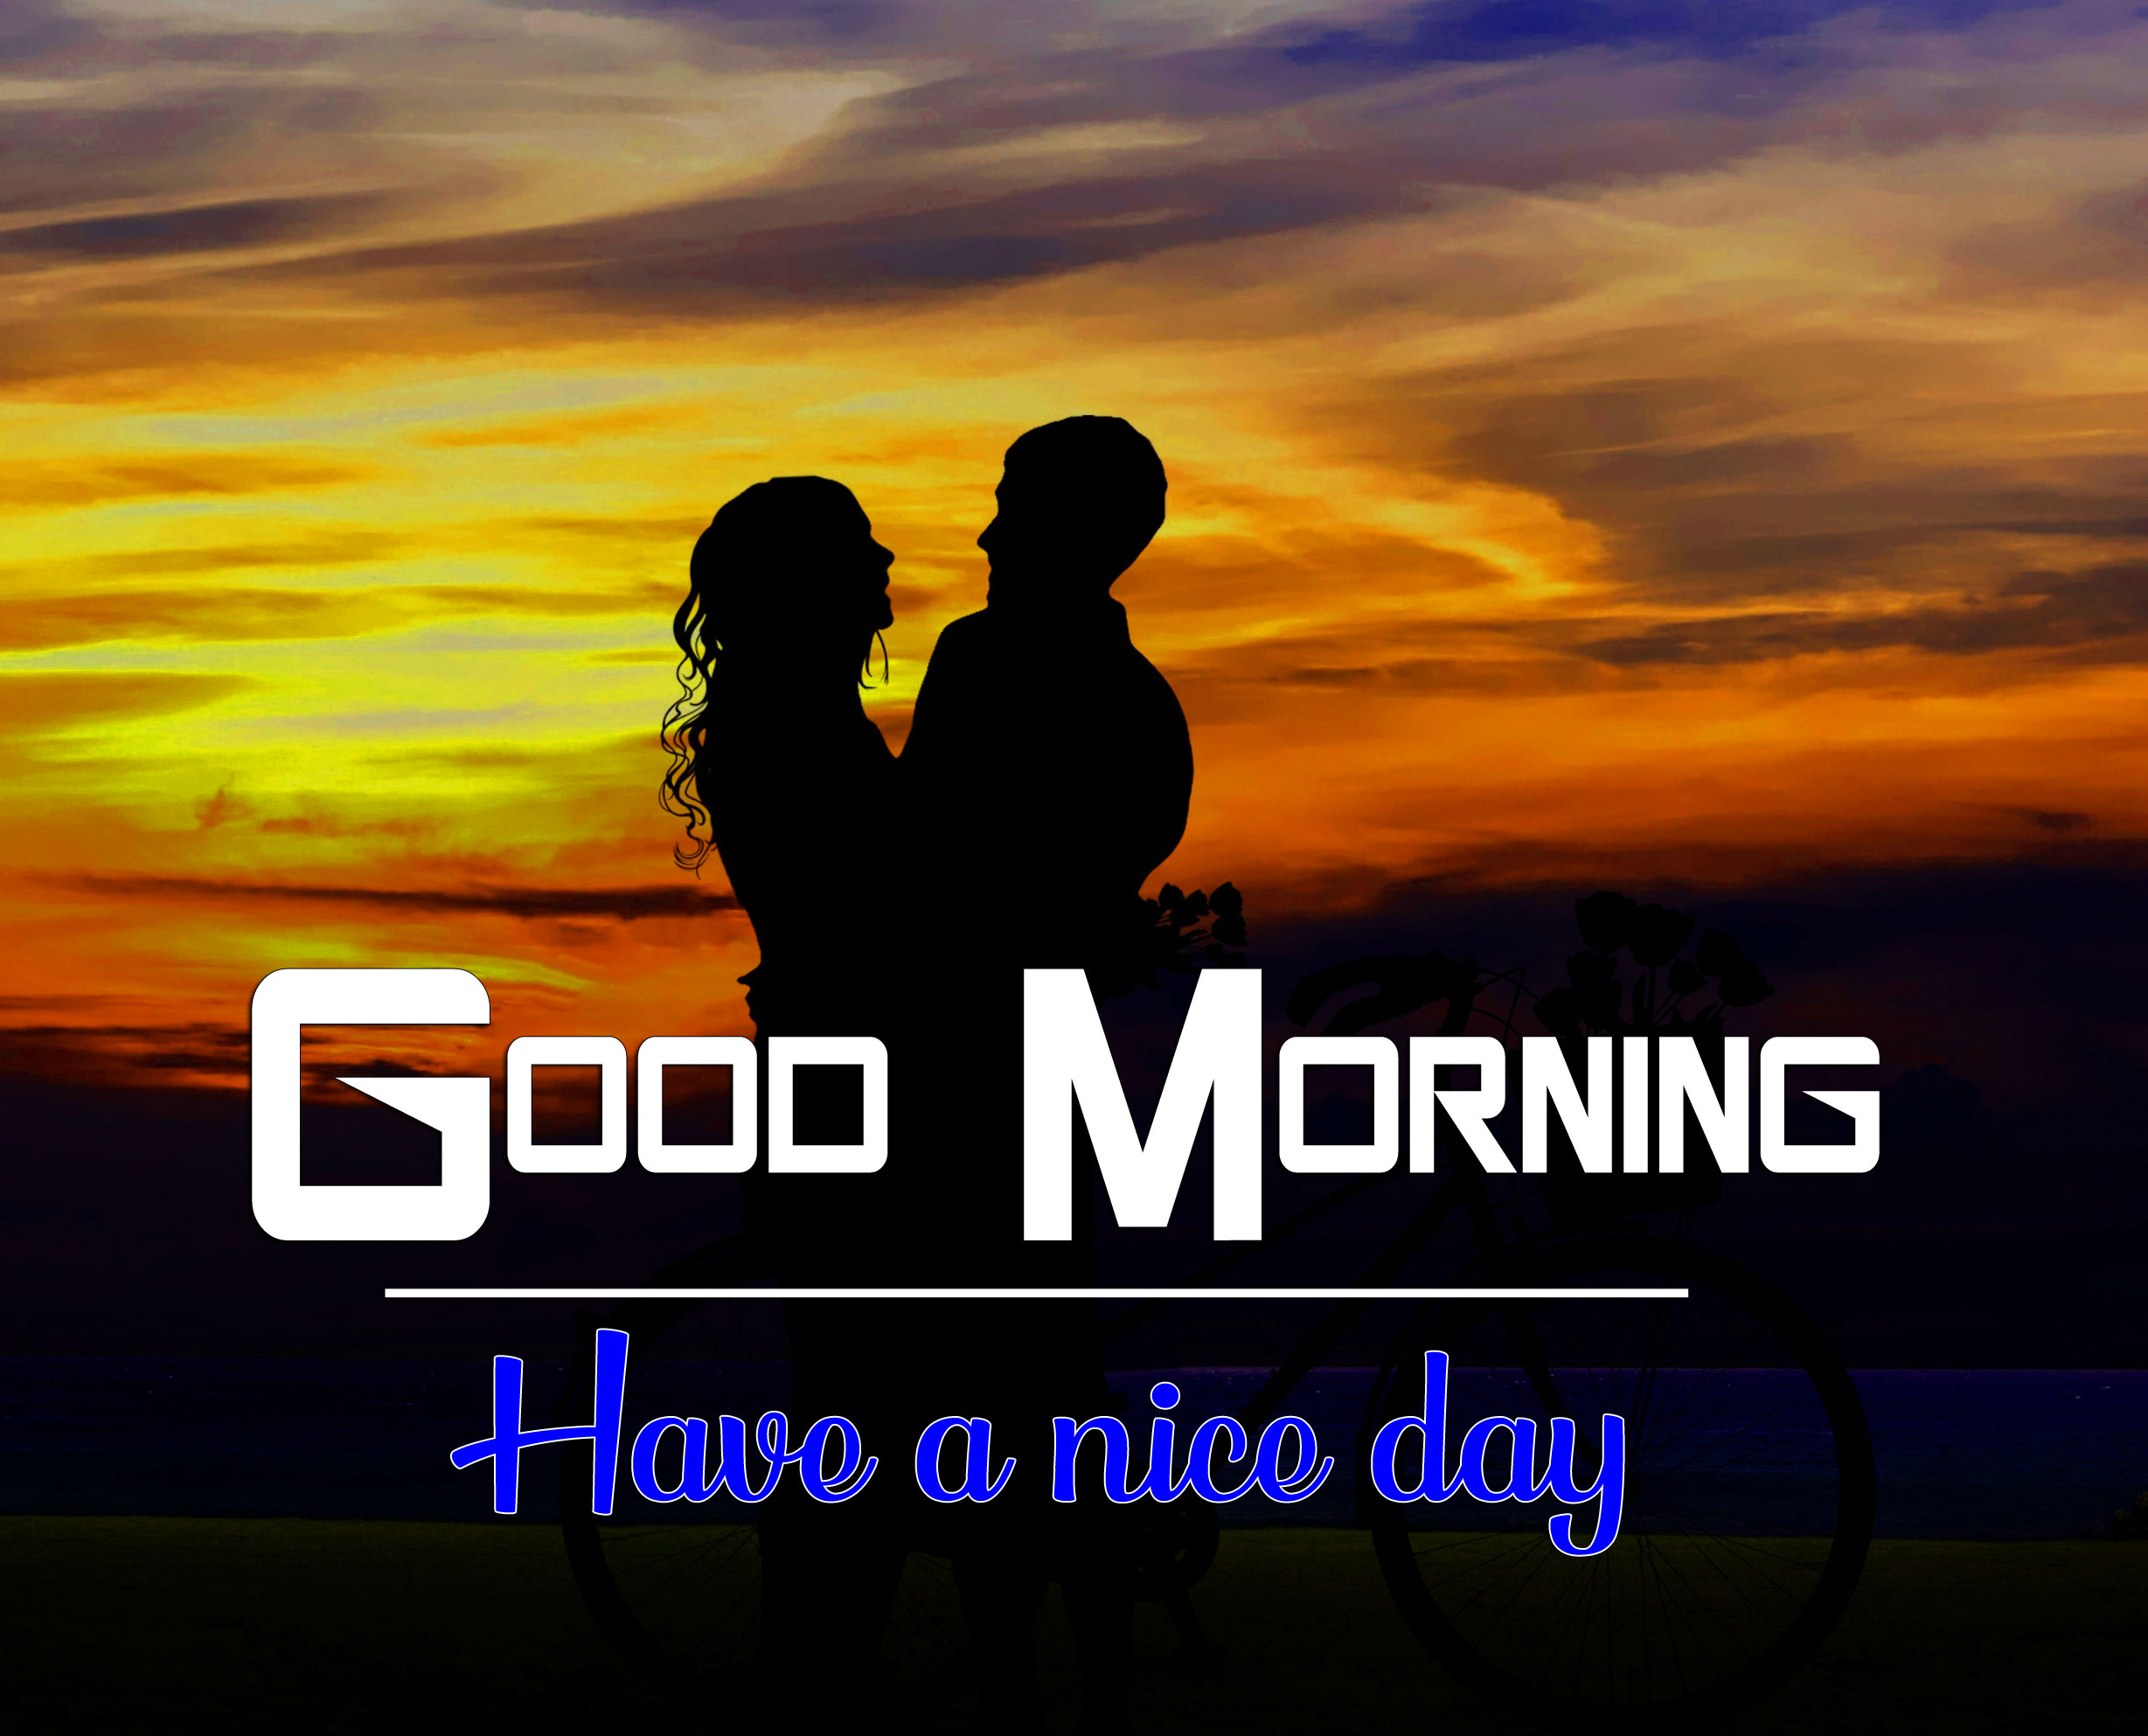 Latest HD New Good Morning Wishes Images